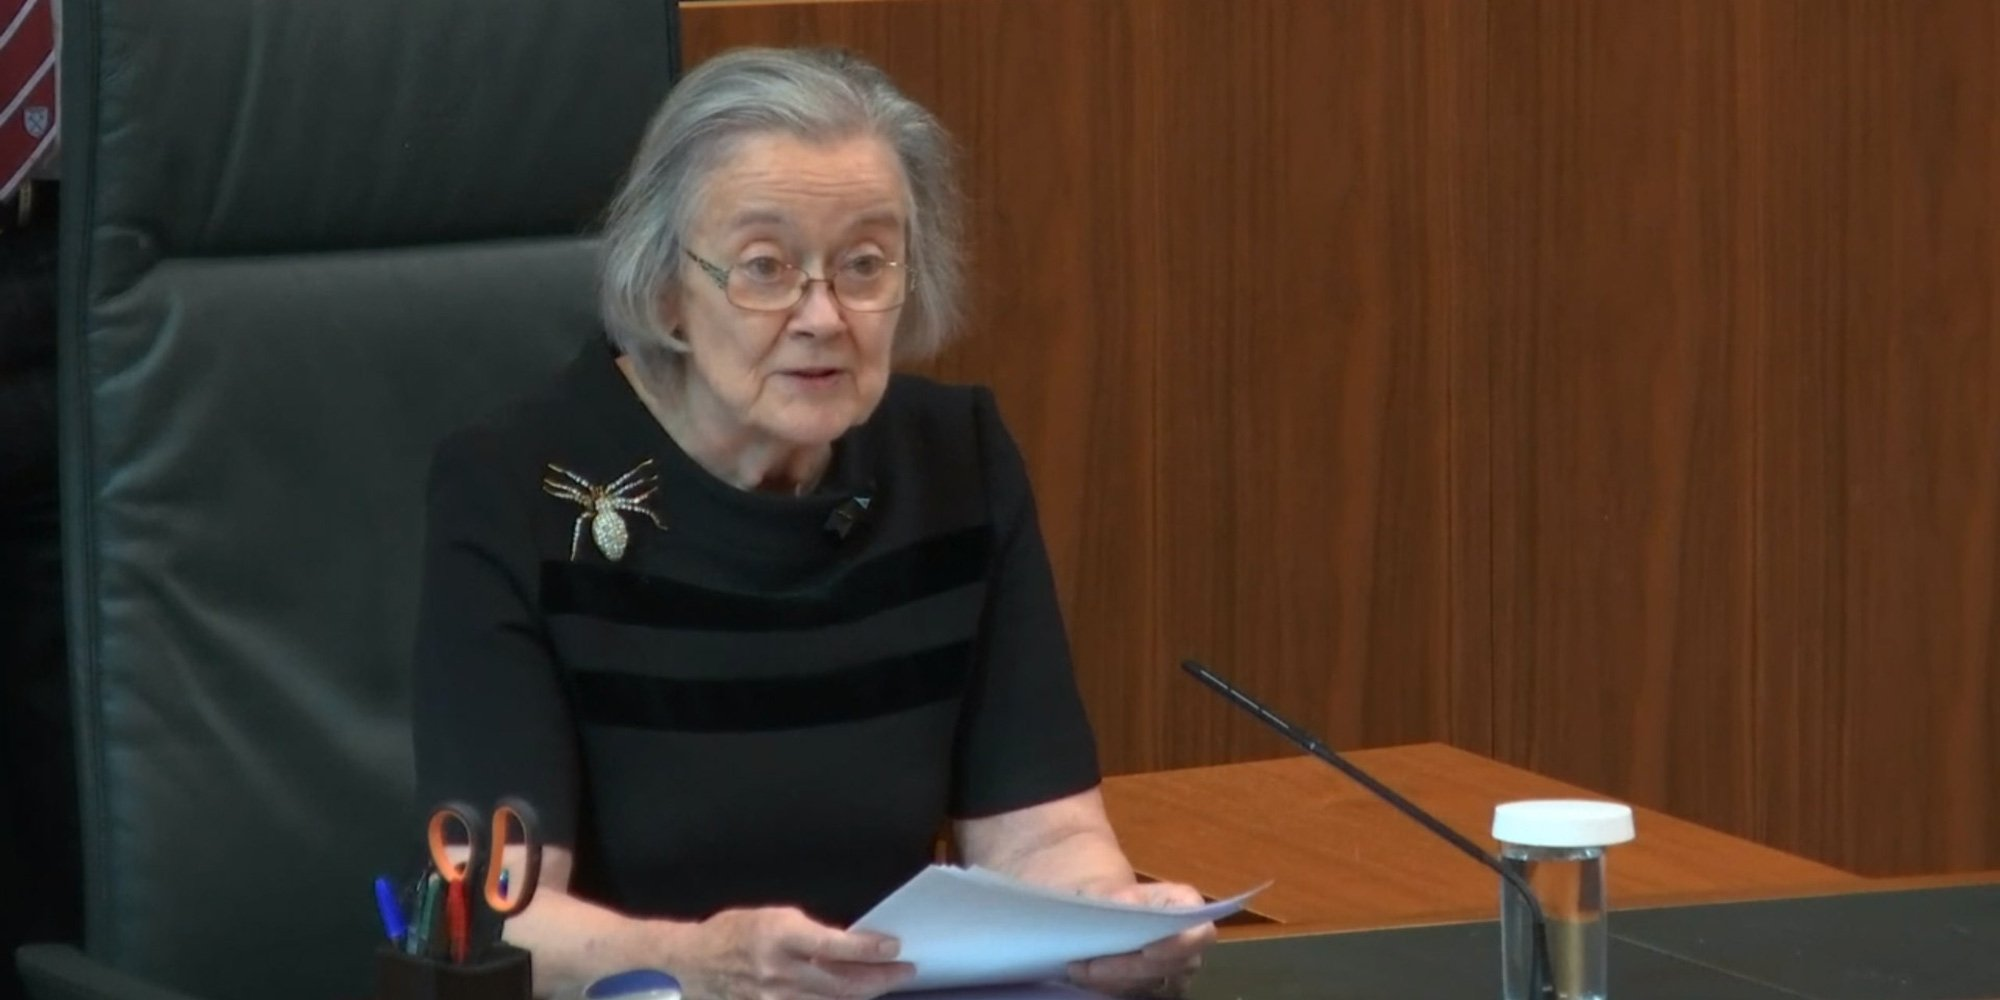 UK Supreme Court President Brenda Hale reading the verdict. Photo courtesy: Twitter